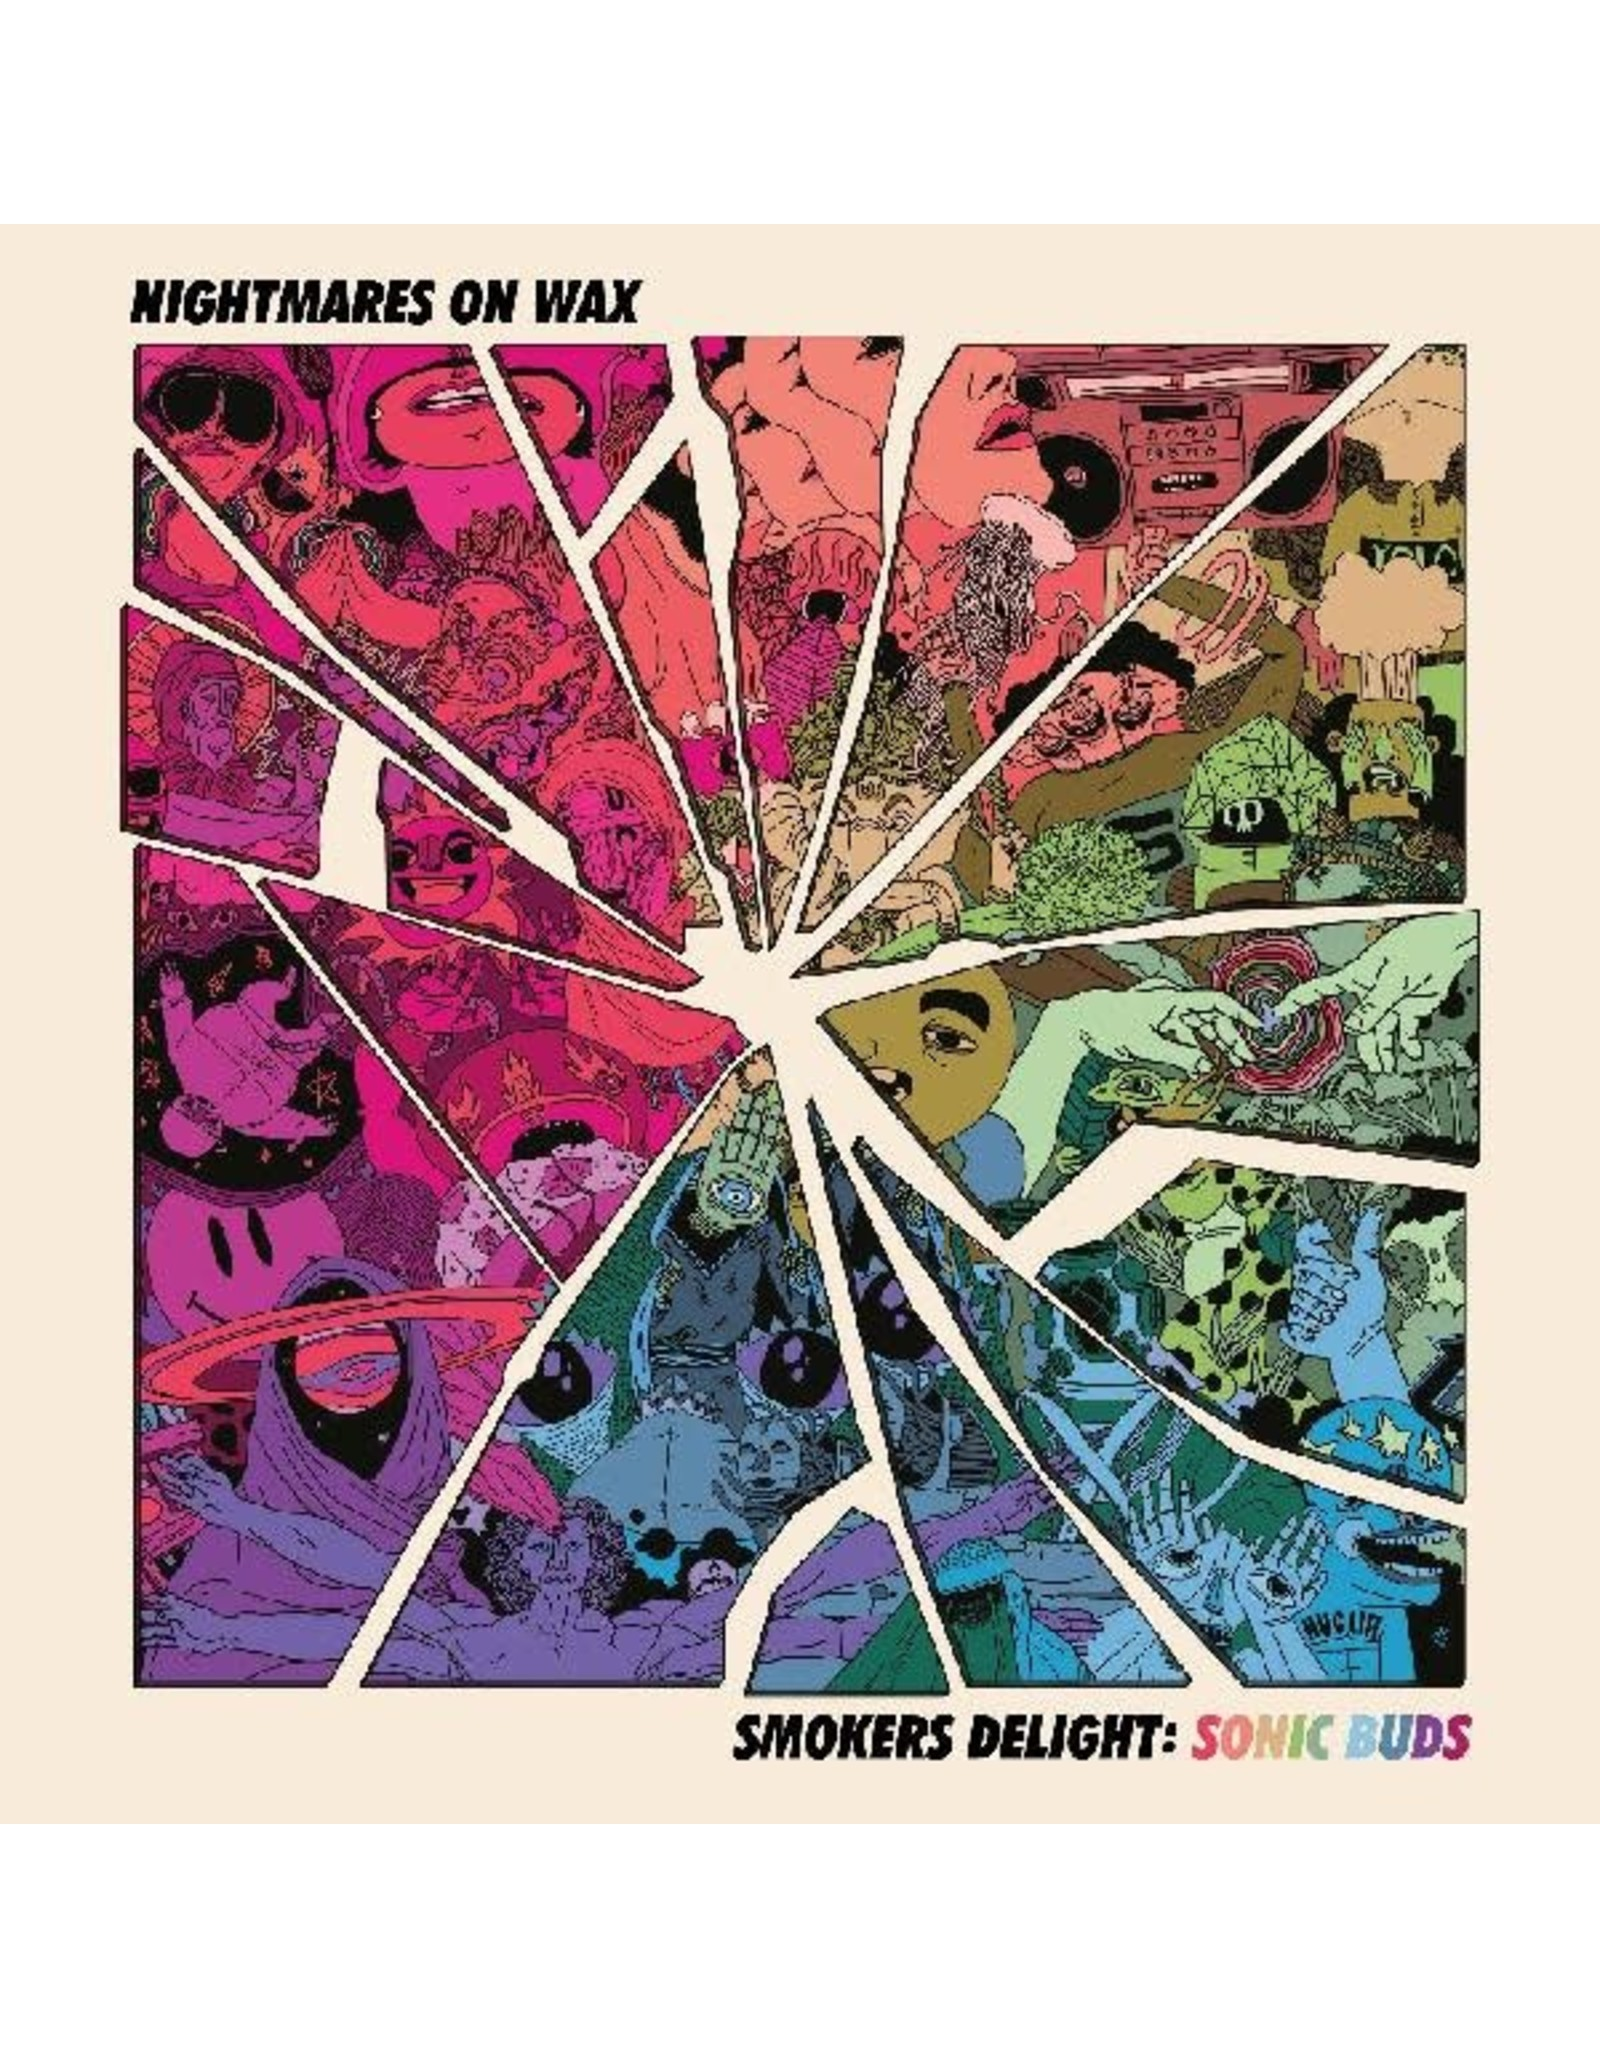 New Vinyl Nightmares On Wax - Smokers Delight: Sonic Buds EP 12""